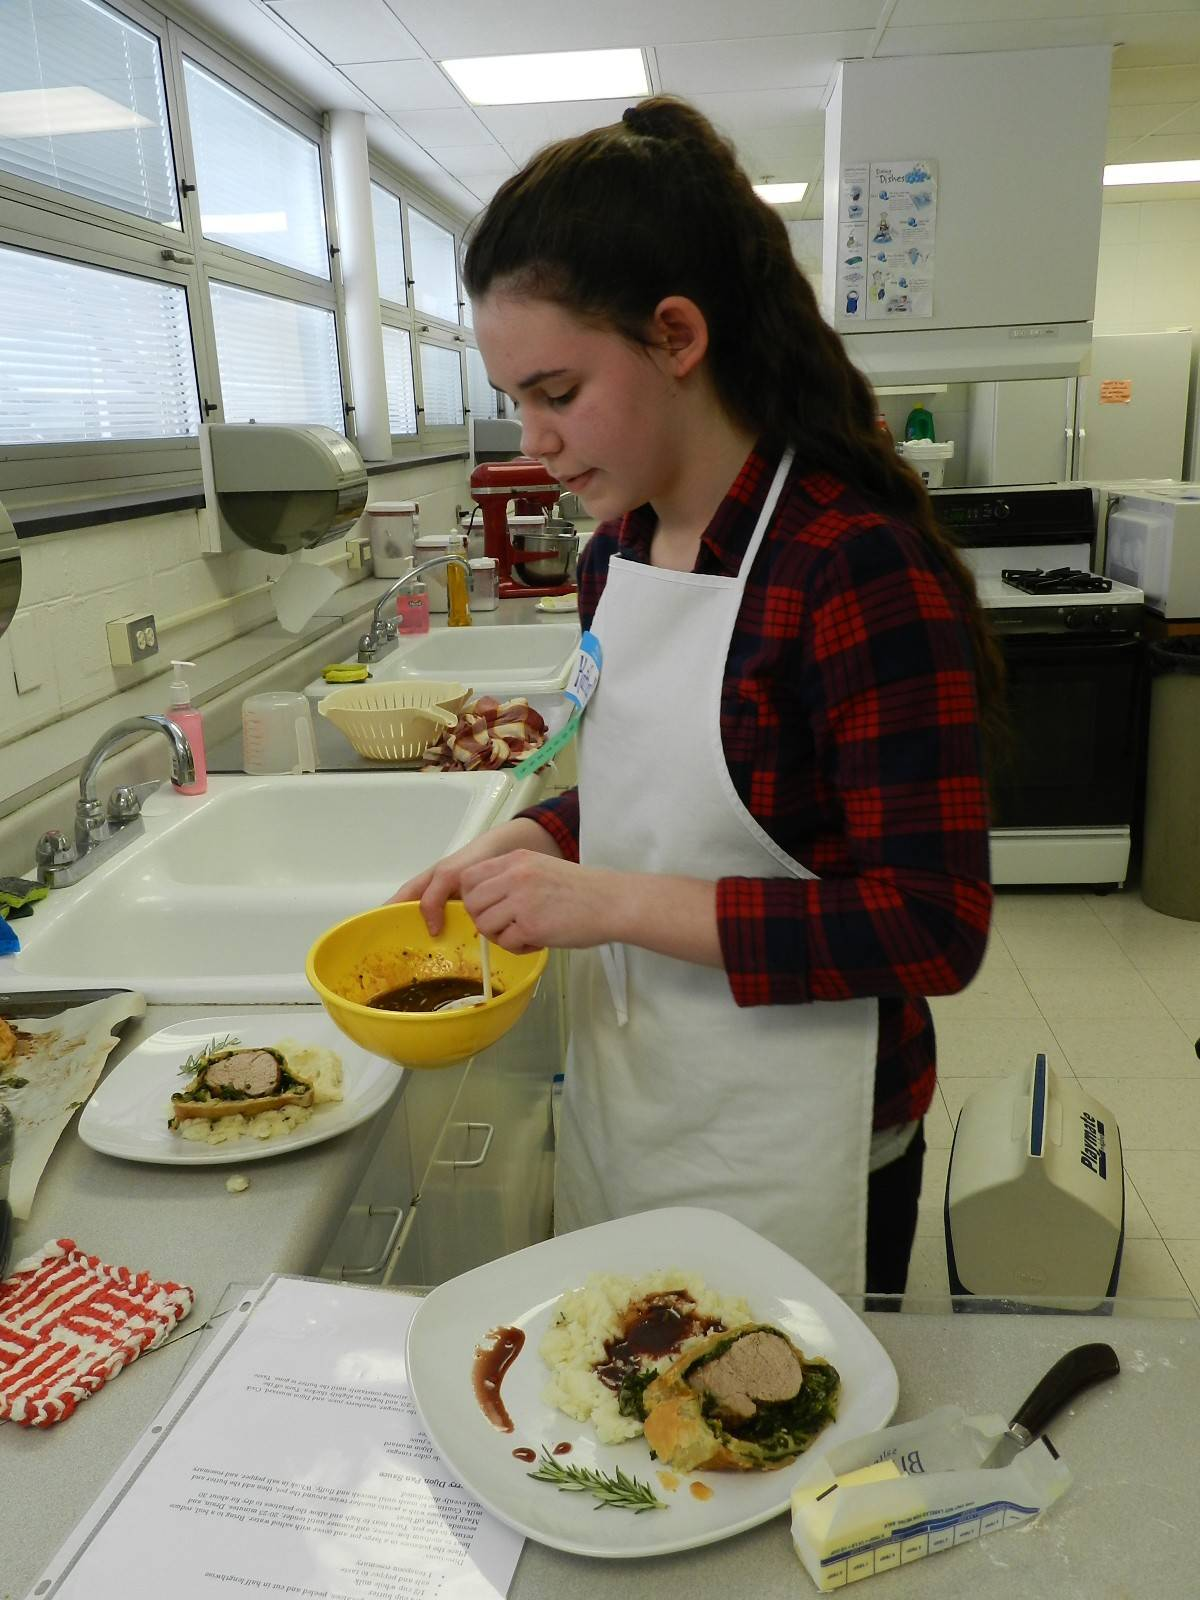 Kaitlyn Ball of Arlington Heights won first place in the age 13 and over category for her pork Florentine en croute with rosemary mashed potatoes at a favorite foods contest in Arlington Heights sponsored by 4-H.